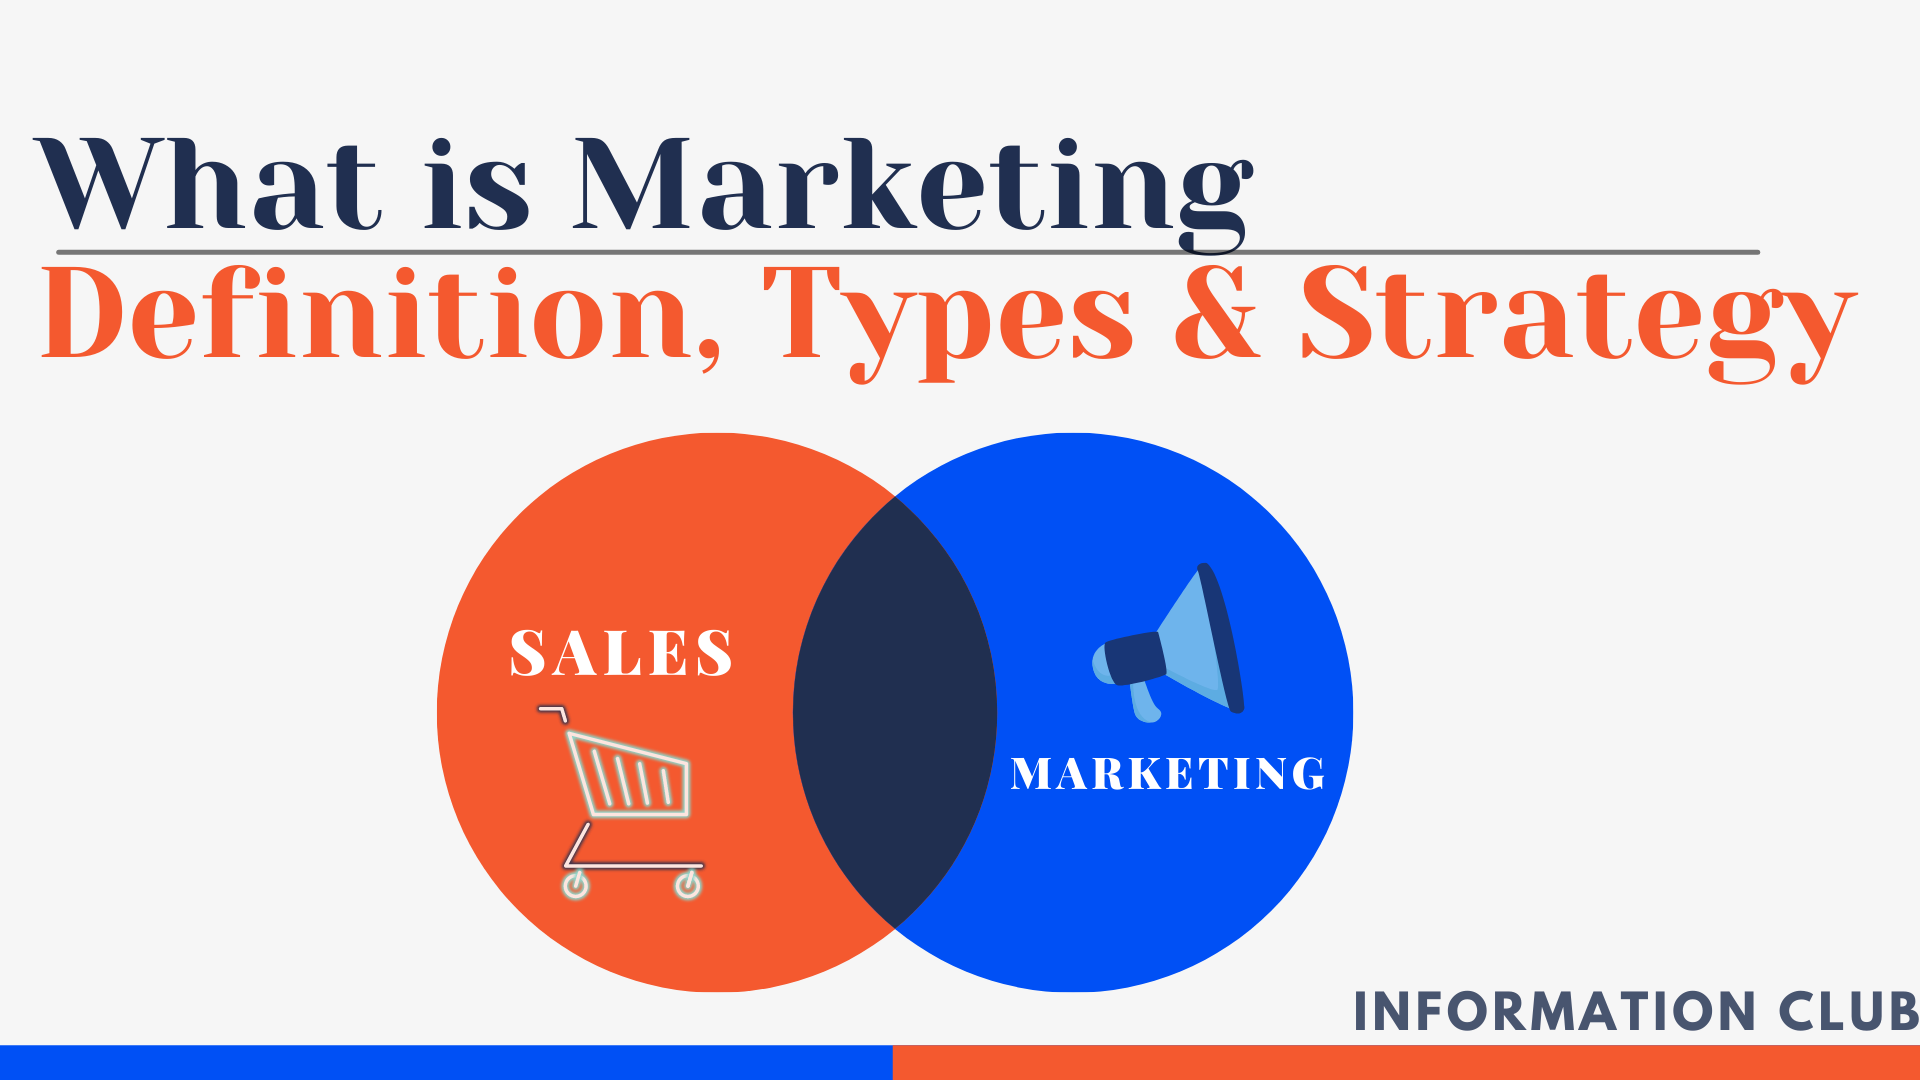 https://www.clubinfonline.com/2020/12/31/what-is-marketing-definition-types-strategy/